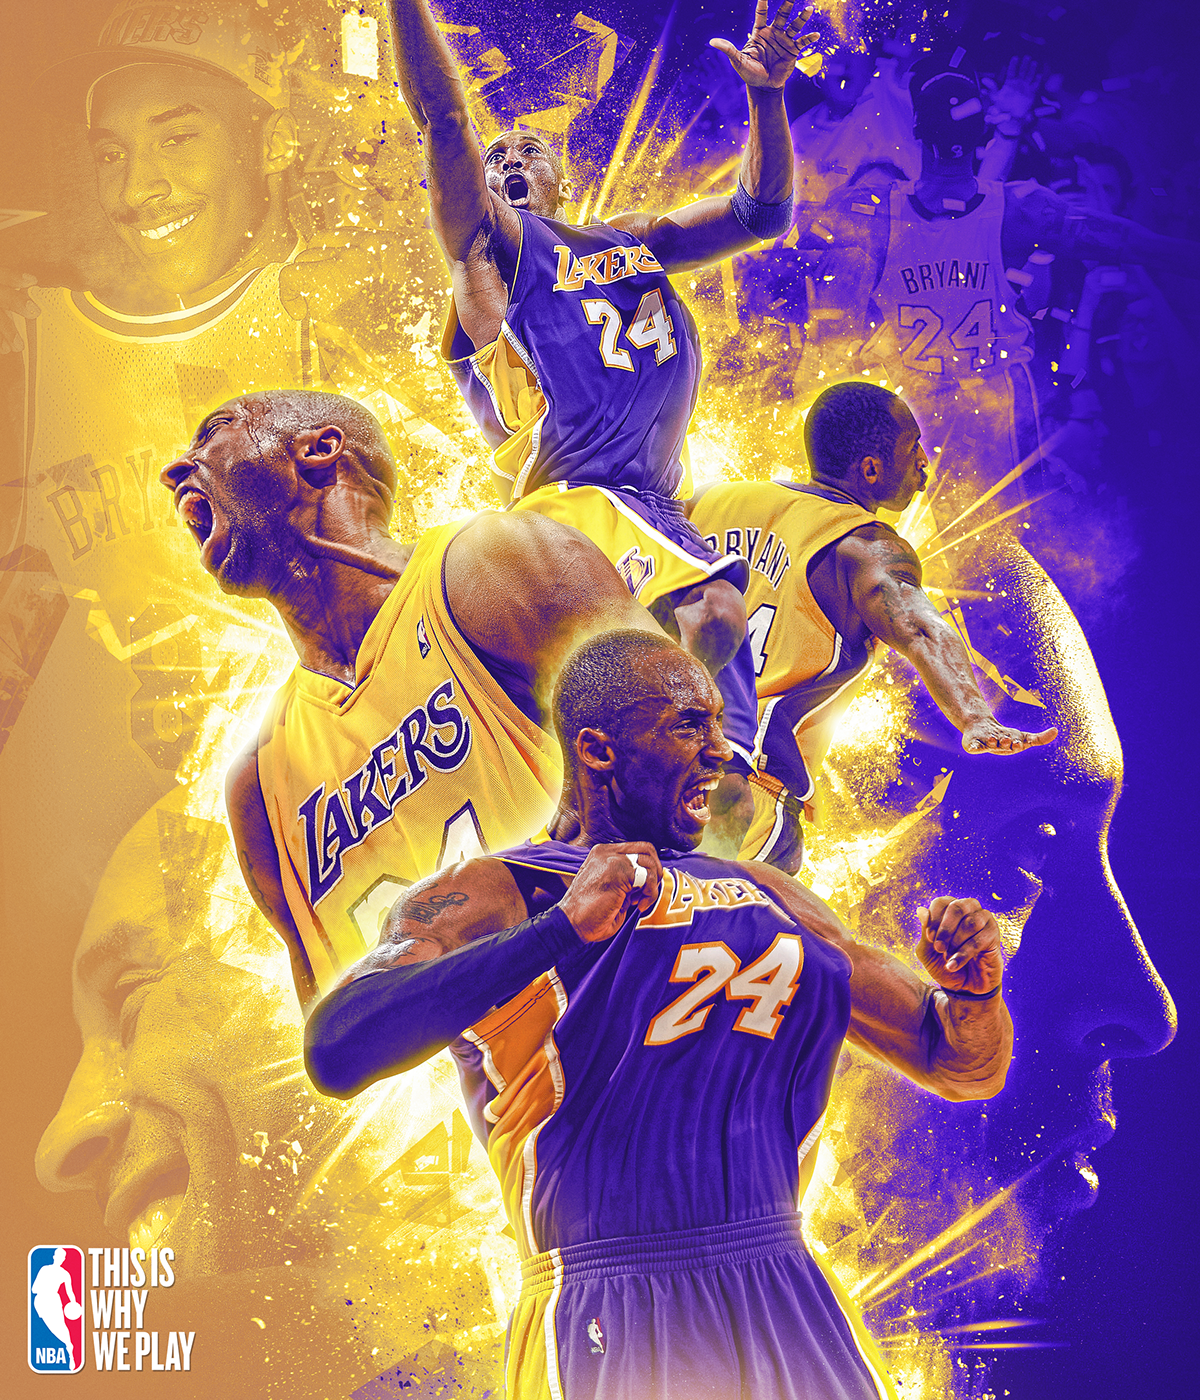 """Kobe Bryant was an inspiration to many people. His dedication to the game of basketball will be forever remembered. """"Kobe Bryant has impacted the game of basketball for me by giving all of his love, dedication, and commitment to the game. His commitment and dedication isn't just a game, it's a lifestyle. The passing of Kobe, his daughter Gigi, as well as the others will always remind me to cherish what I have because it could end any day,"""" said freshman Tayla Jones."""